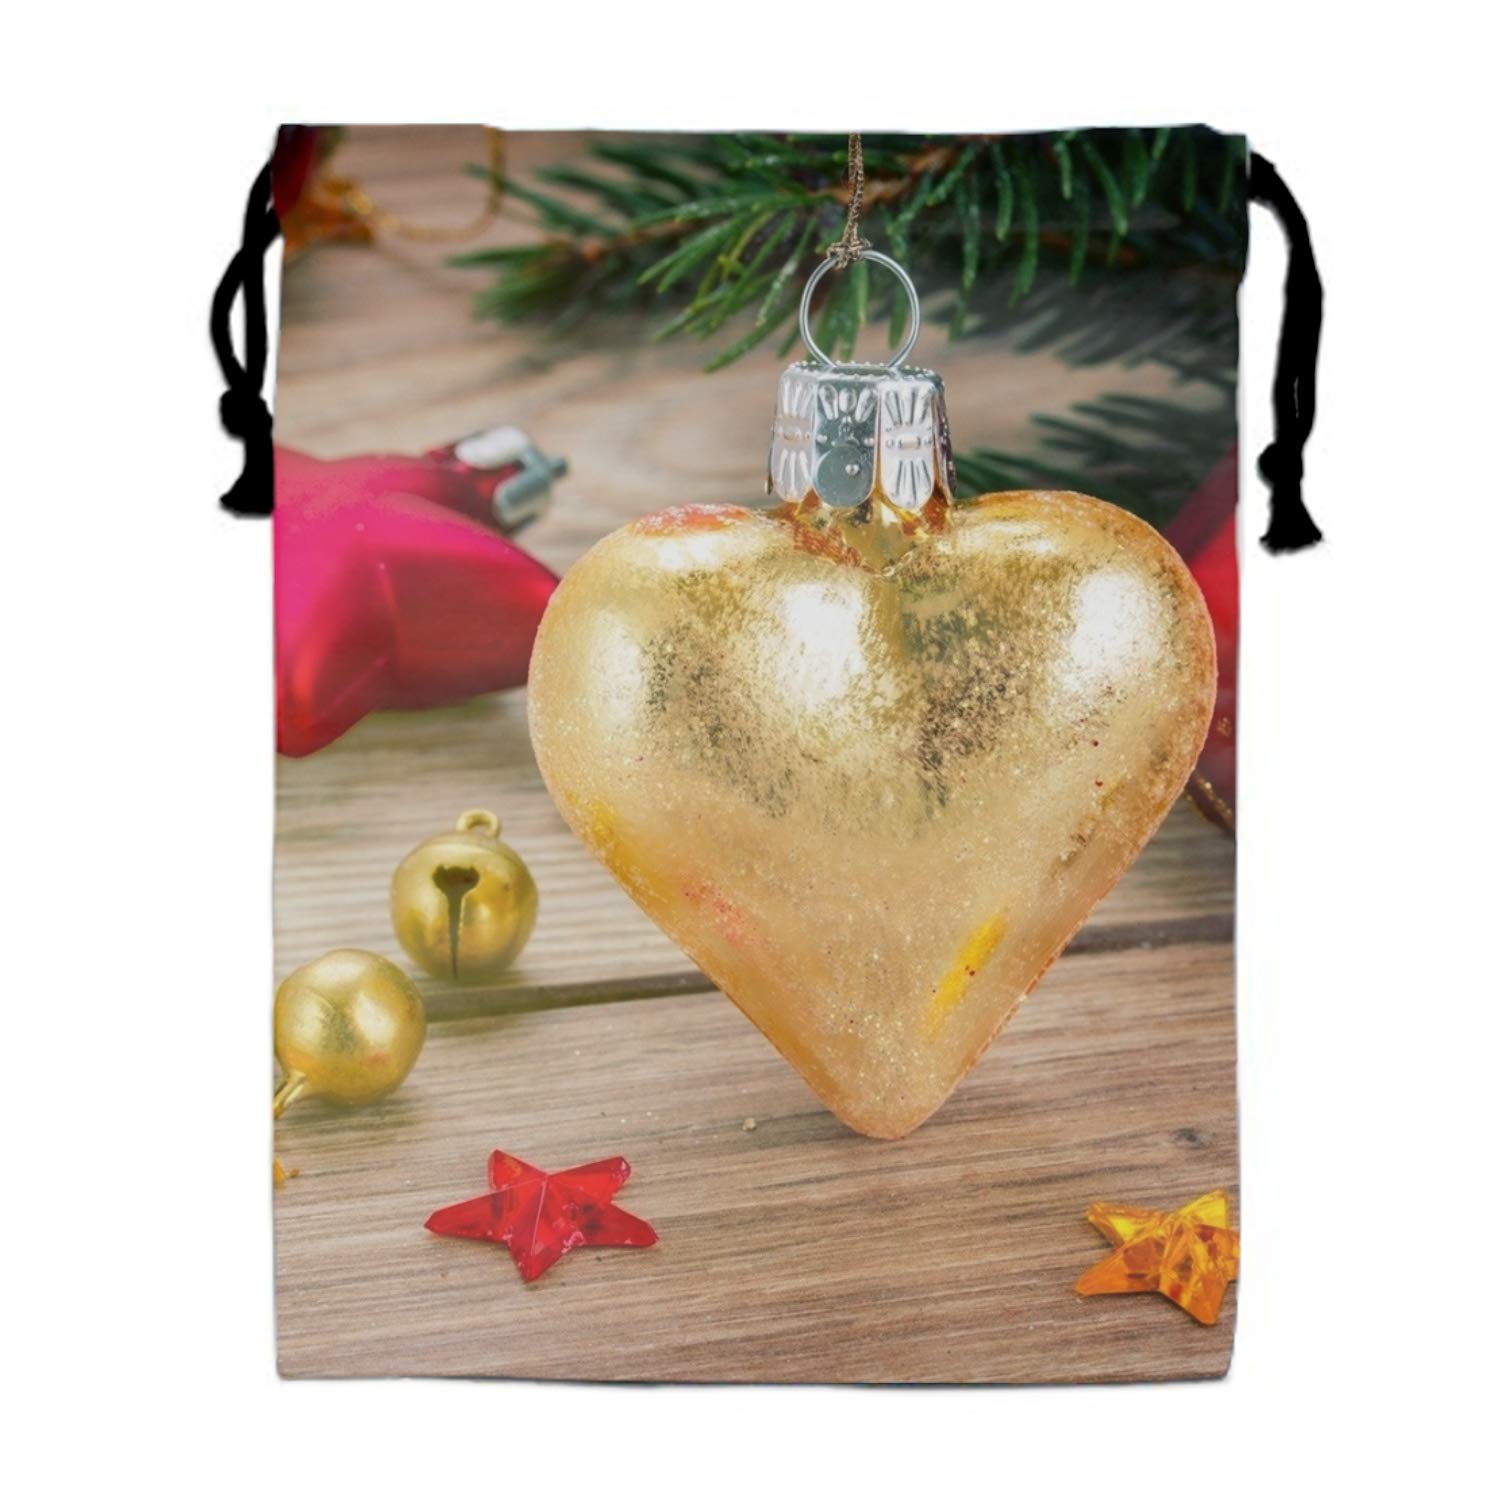 Christmas Merry Tree Travel Drawstring Bag Shoe Laundry Underwear Makeup Storage Pouch 15.75 x 11.8 inch